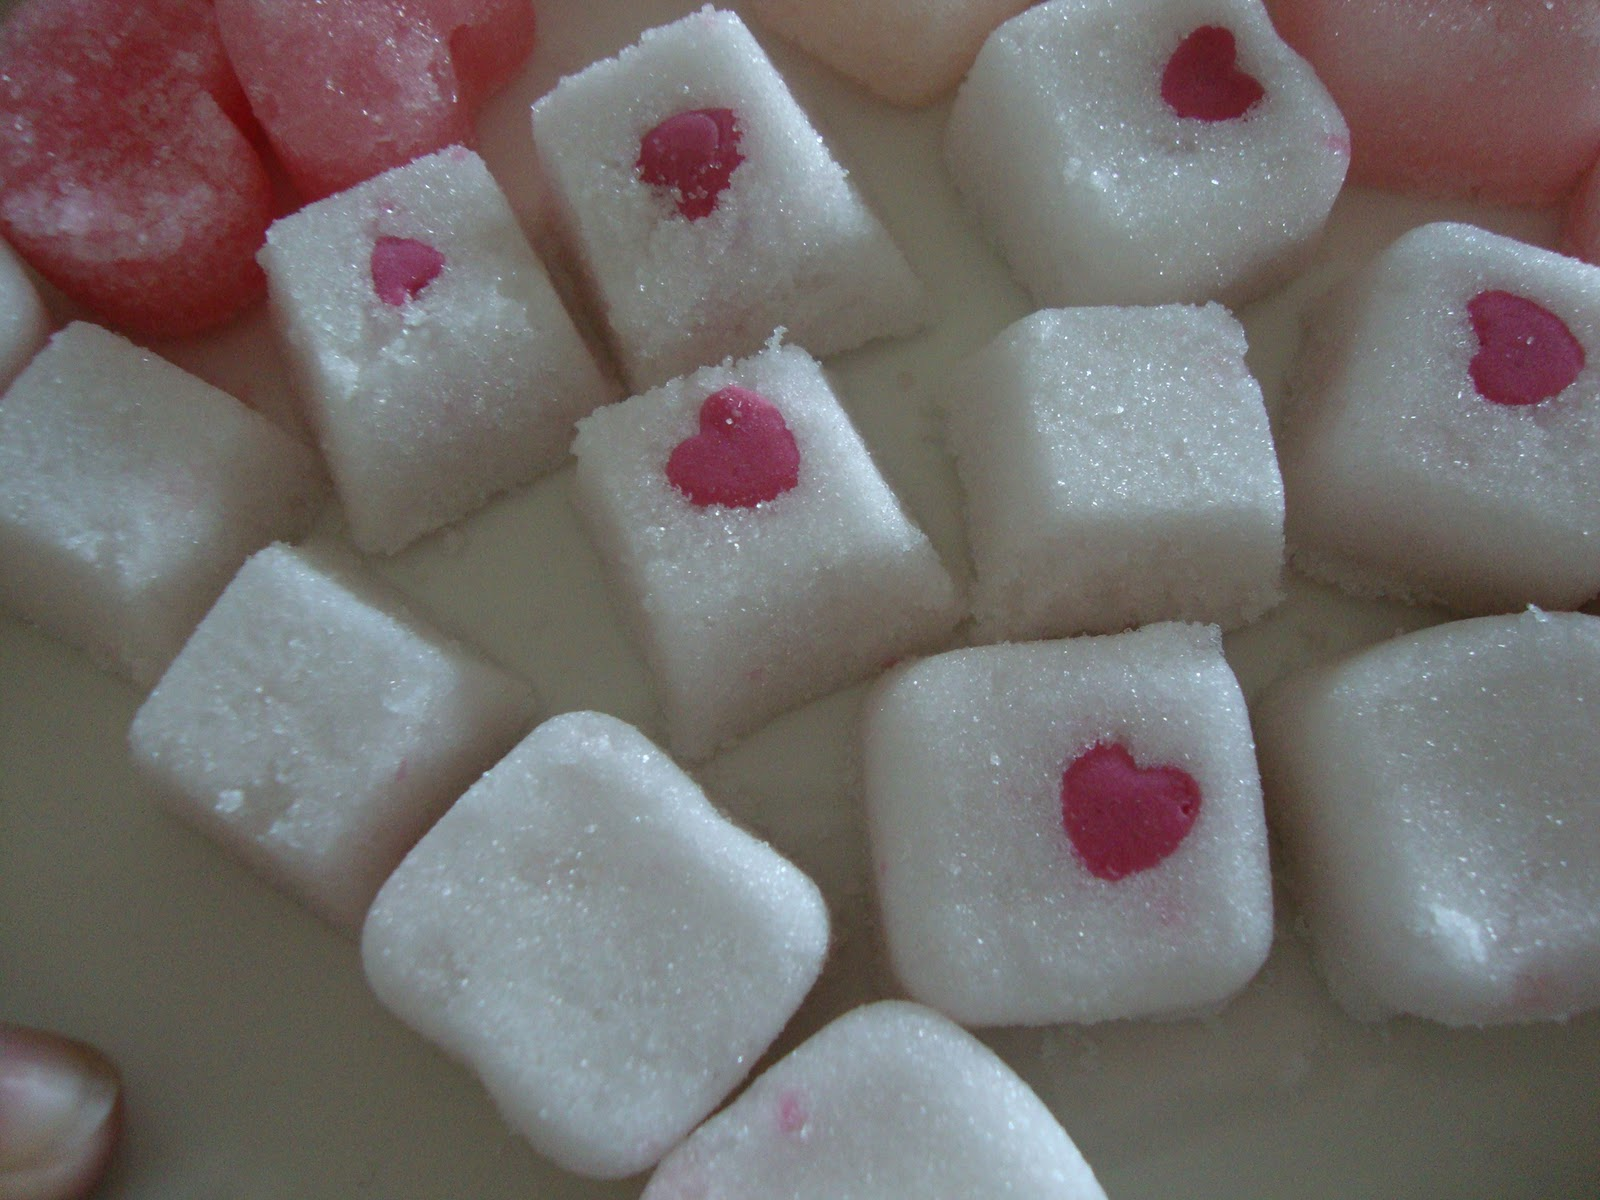 Nicoletta's beauty space: Valentines Sugar Cube Gift Idea!